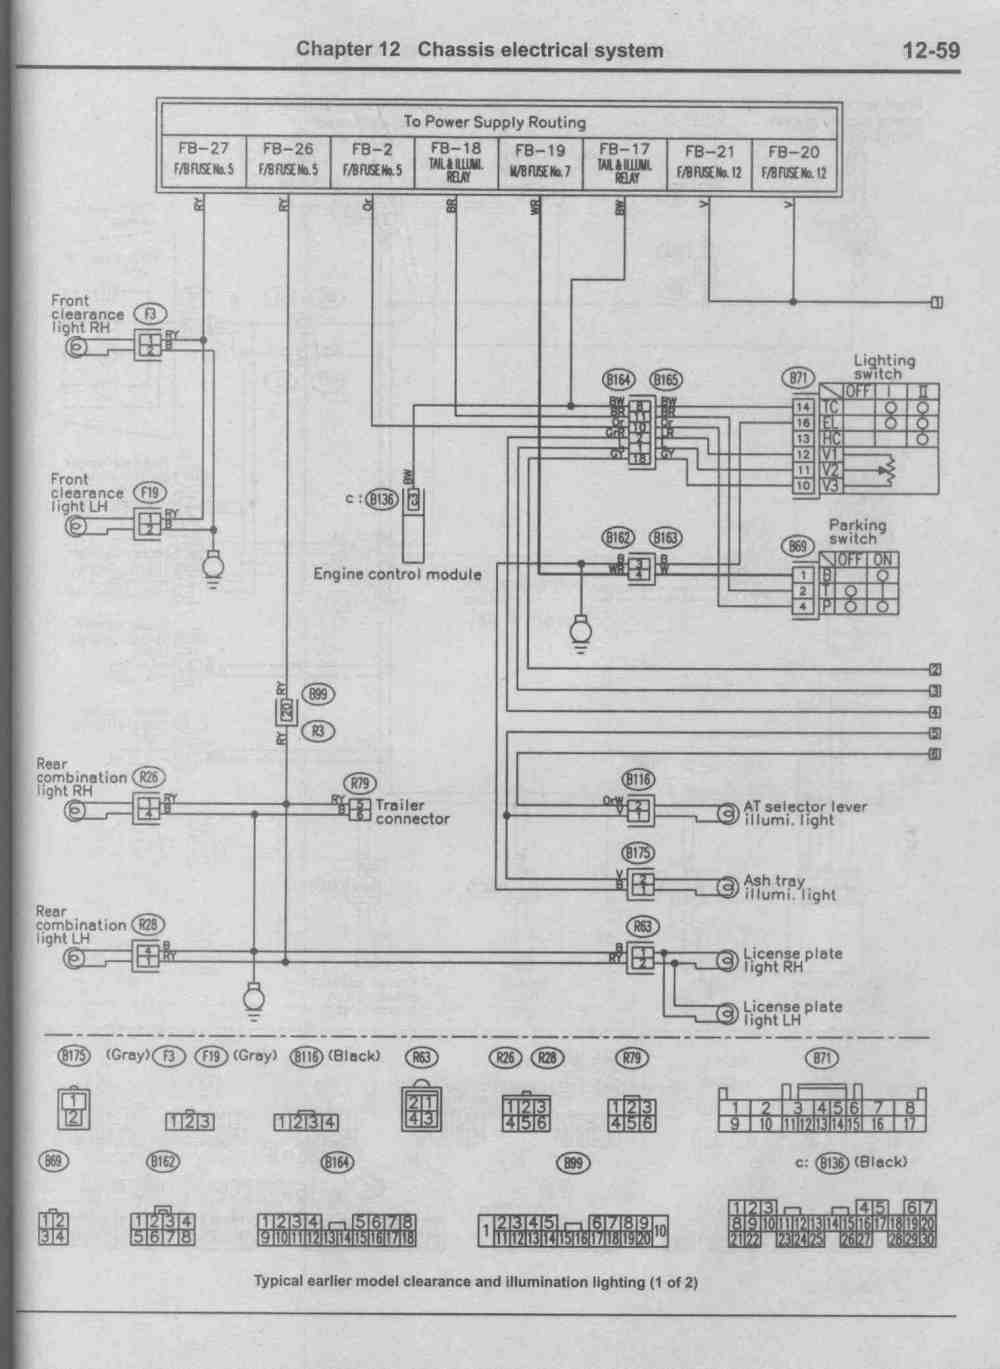 medium resolution of 2004 subaru radio wire diagram simple wiring schema subaru wiring harness diagram 2004 subaru wiring diagram